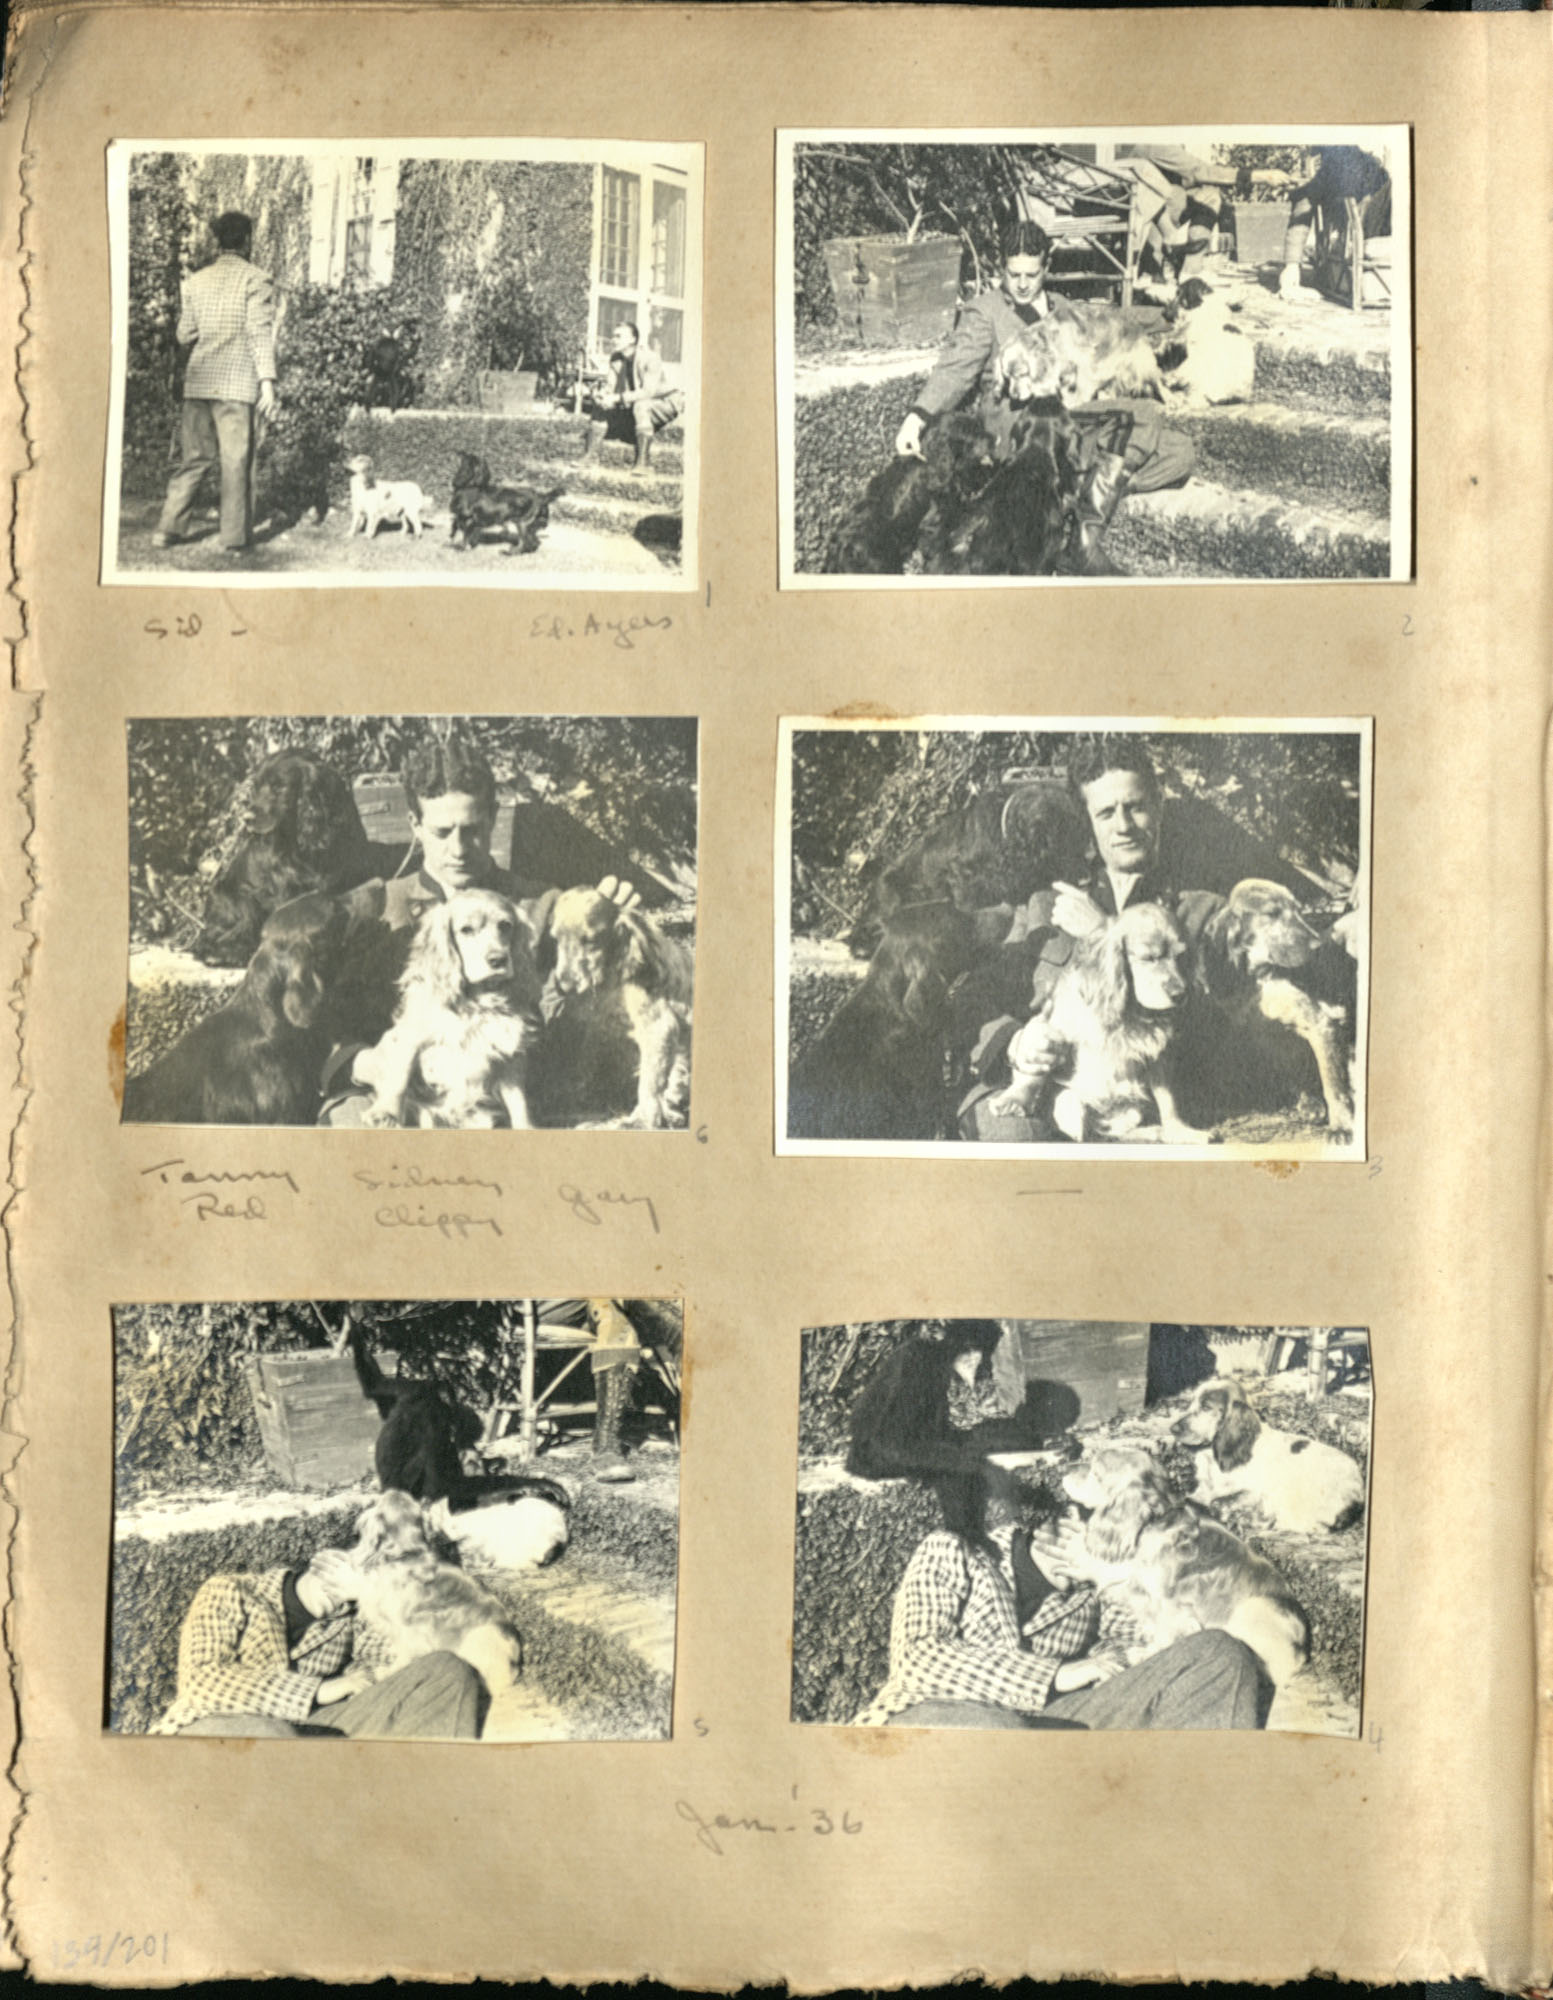 Early Medway and travels album, 1929-1937, page 134